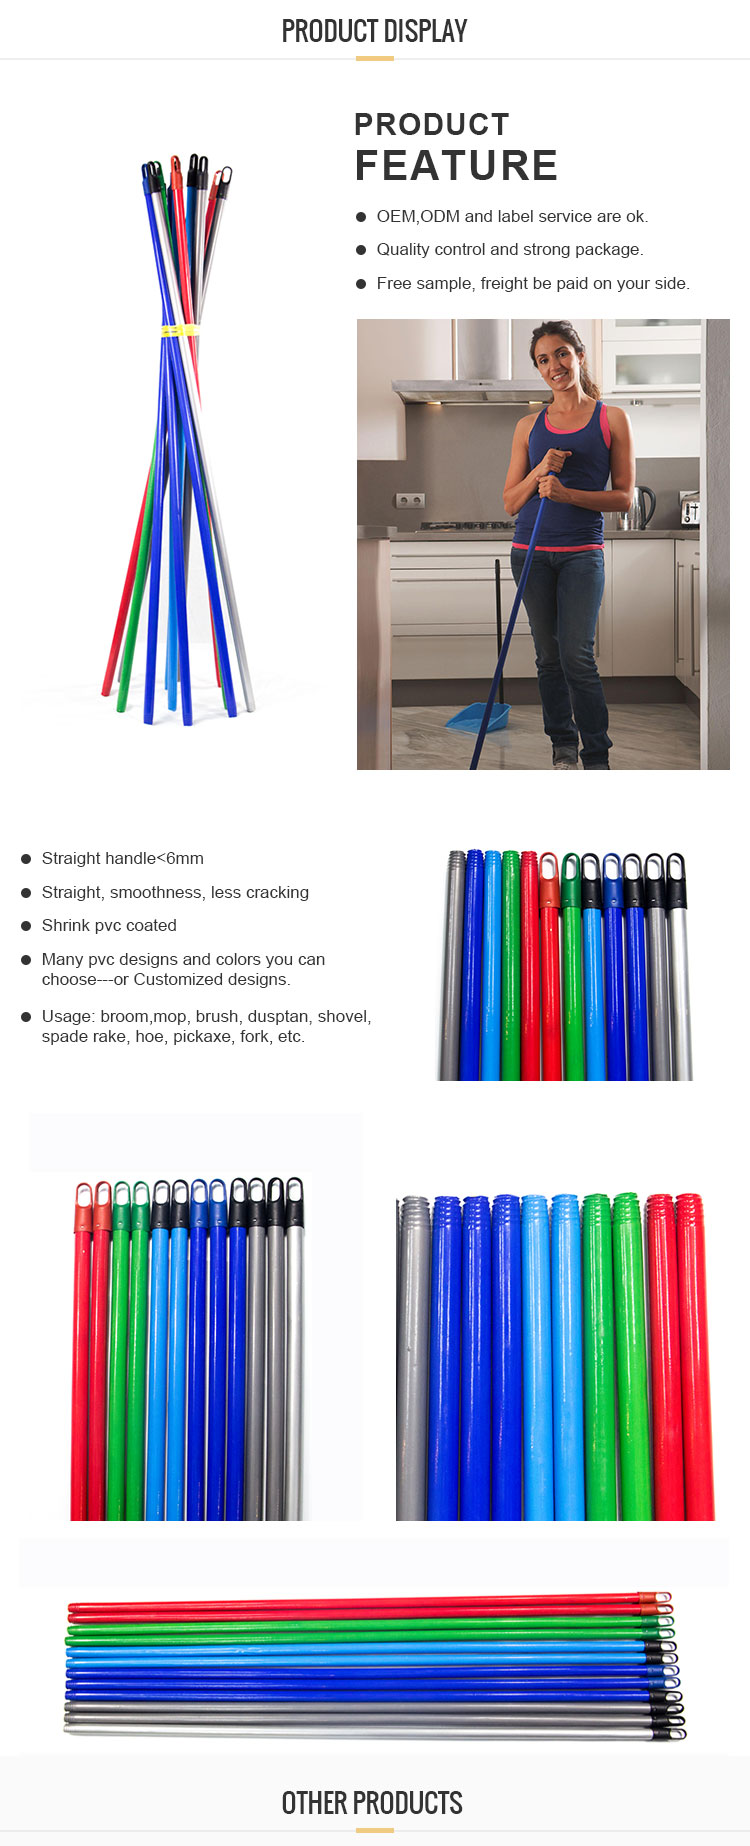 GLY Several Colors PVC Coated Sharpened Wood Broom Stick